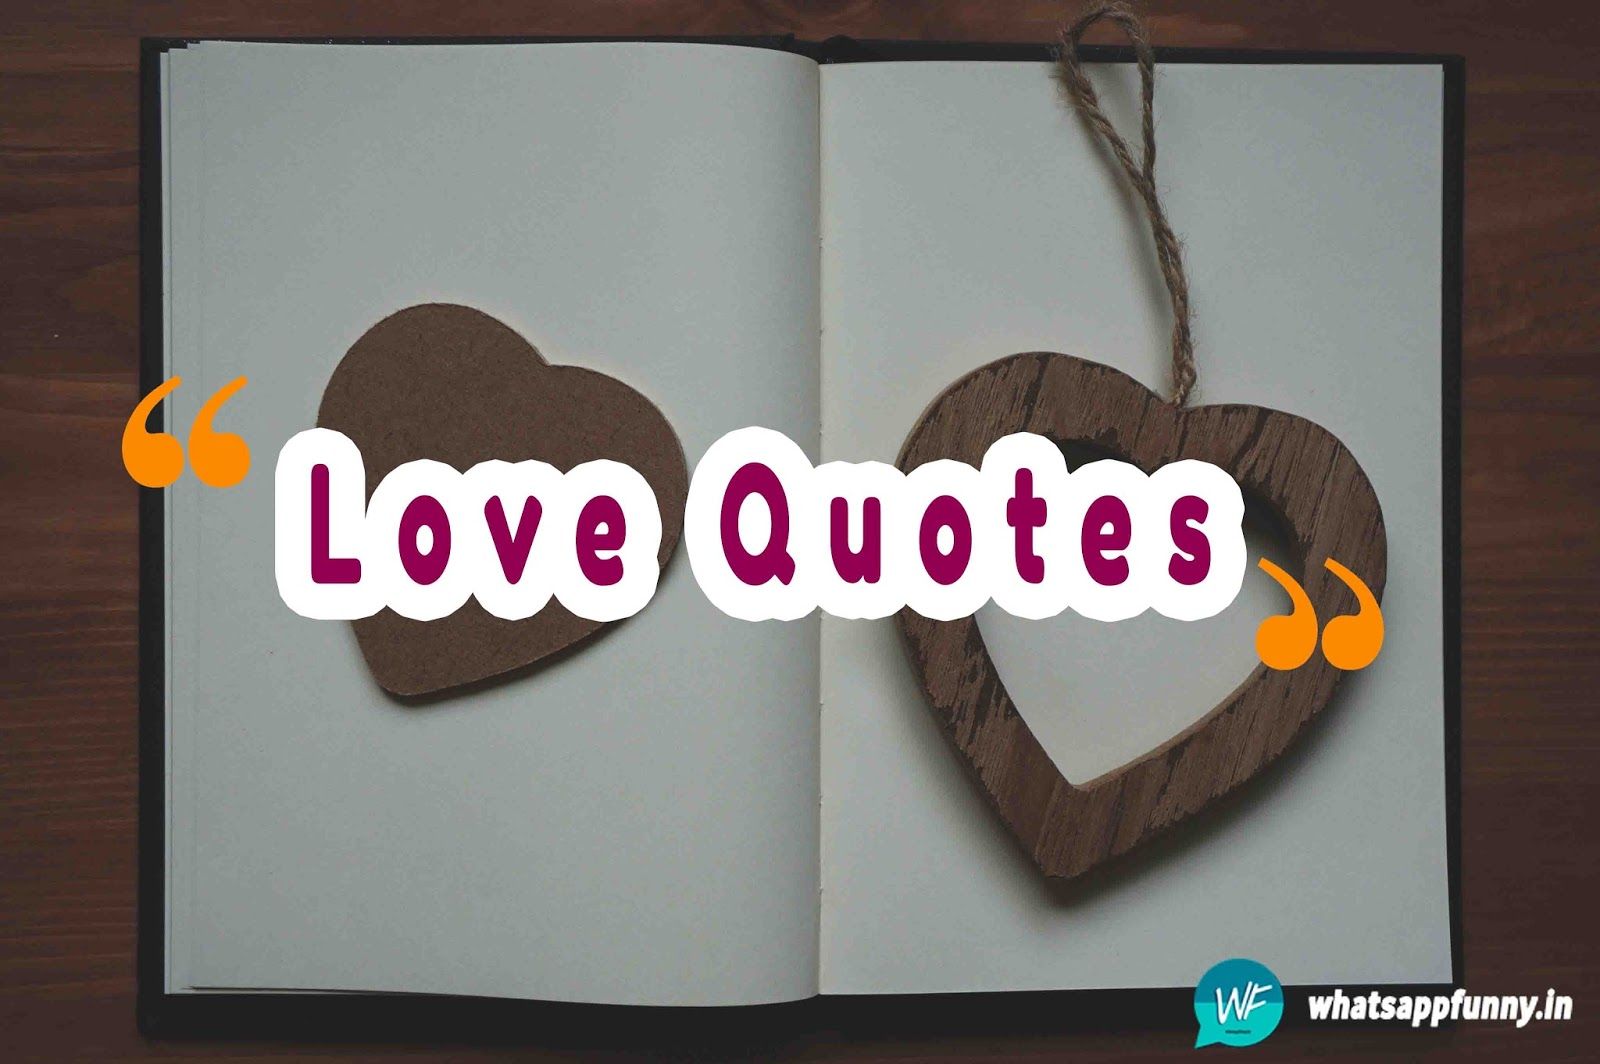 one line quotes, love quotes, relationship quotes